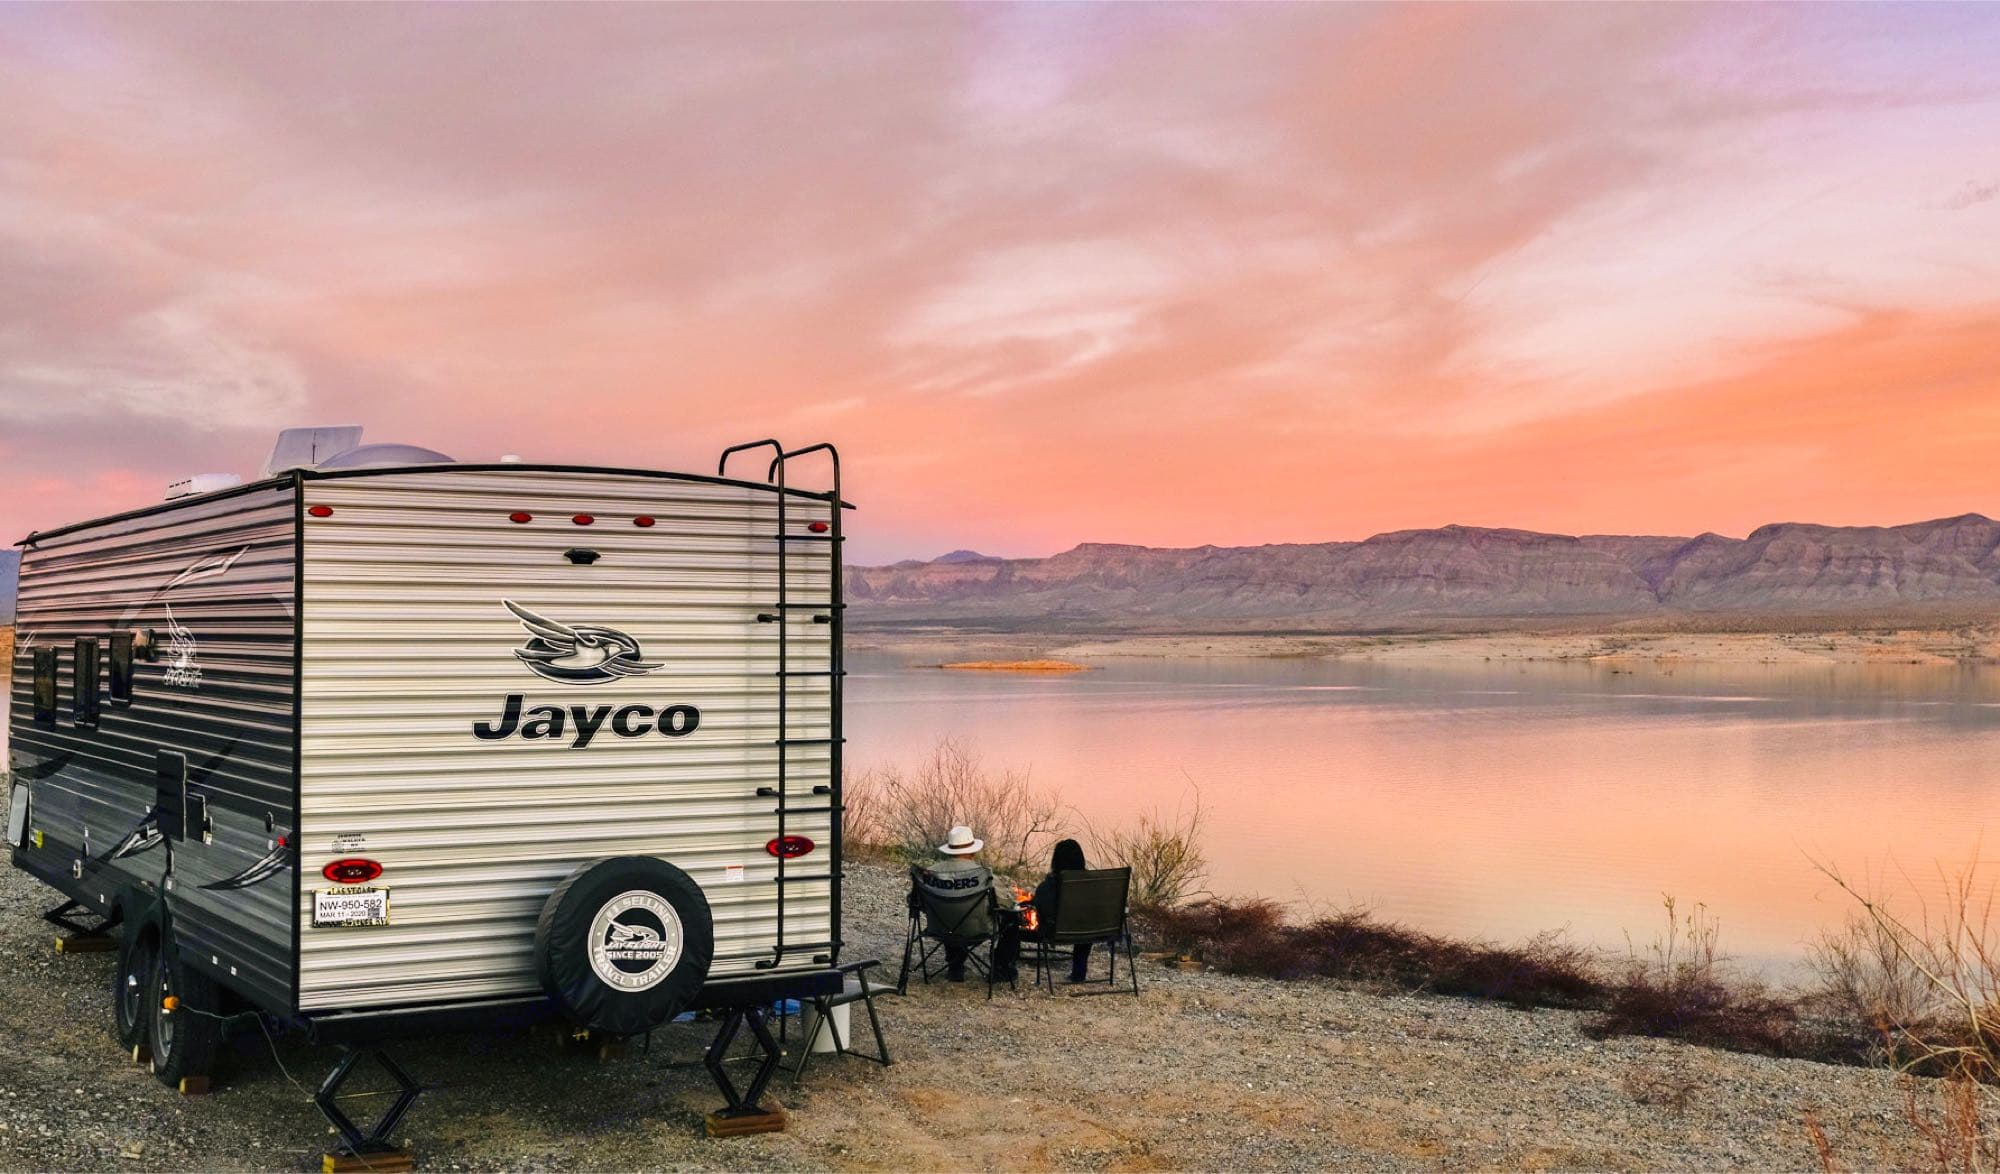 rear exterior. In-laws relaxing at lake mead. Jayco JayFlight 2020